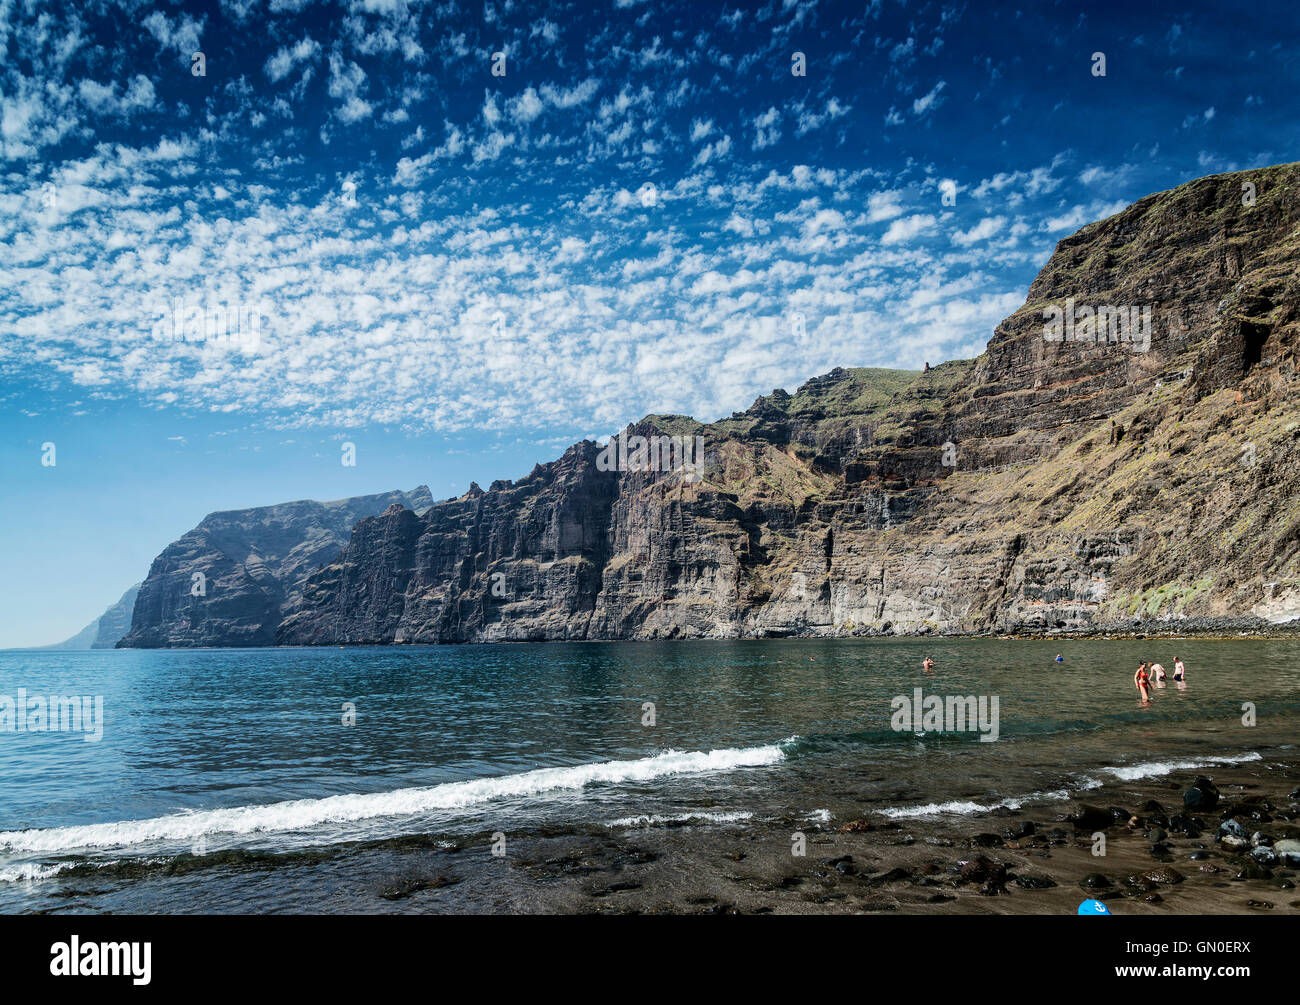 tourists bathing at los gigantes volcanic black sand beach by famous natural cliffs landmark in south tenerife island - Stock Image